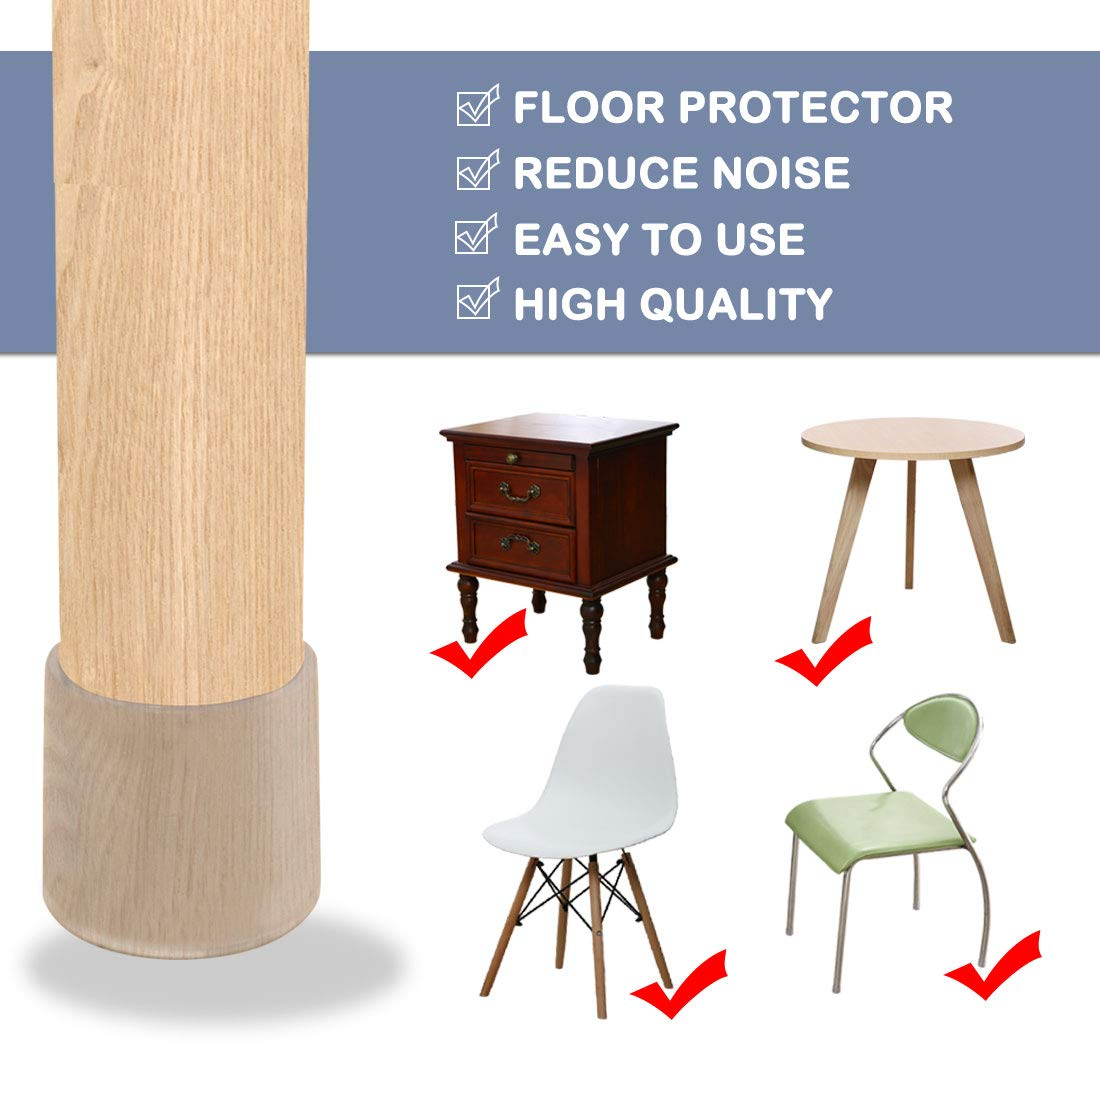 Reduce Noise Prevent Scratch uxcell Clear PVC Chair Leg Caps End Tip Feet Cover Furniture Glide Floor Protector 5pcs 1.5 38mm Inner Diameter